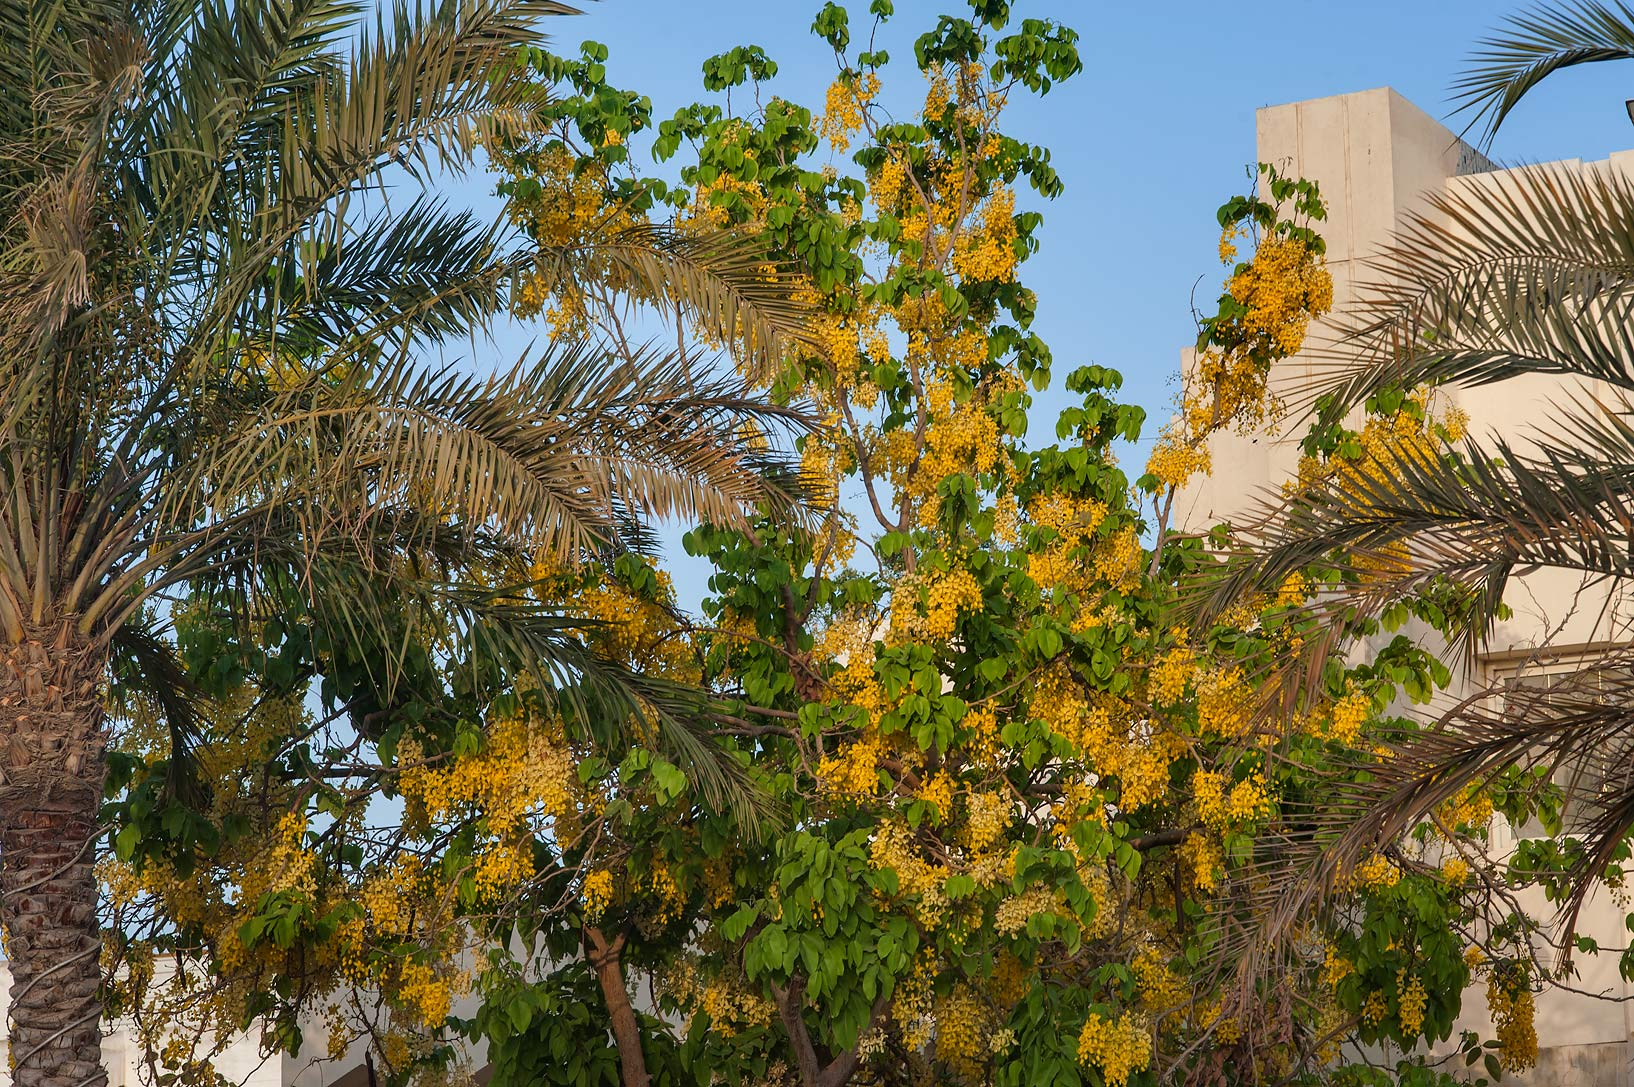 Golden shower tree (Cassia fistula) in Onaiza area. Doha, Qatar